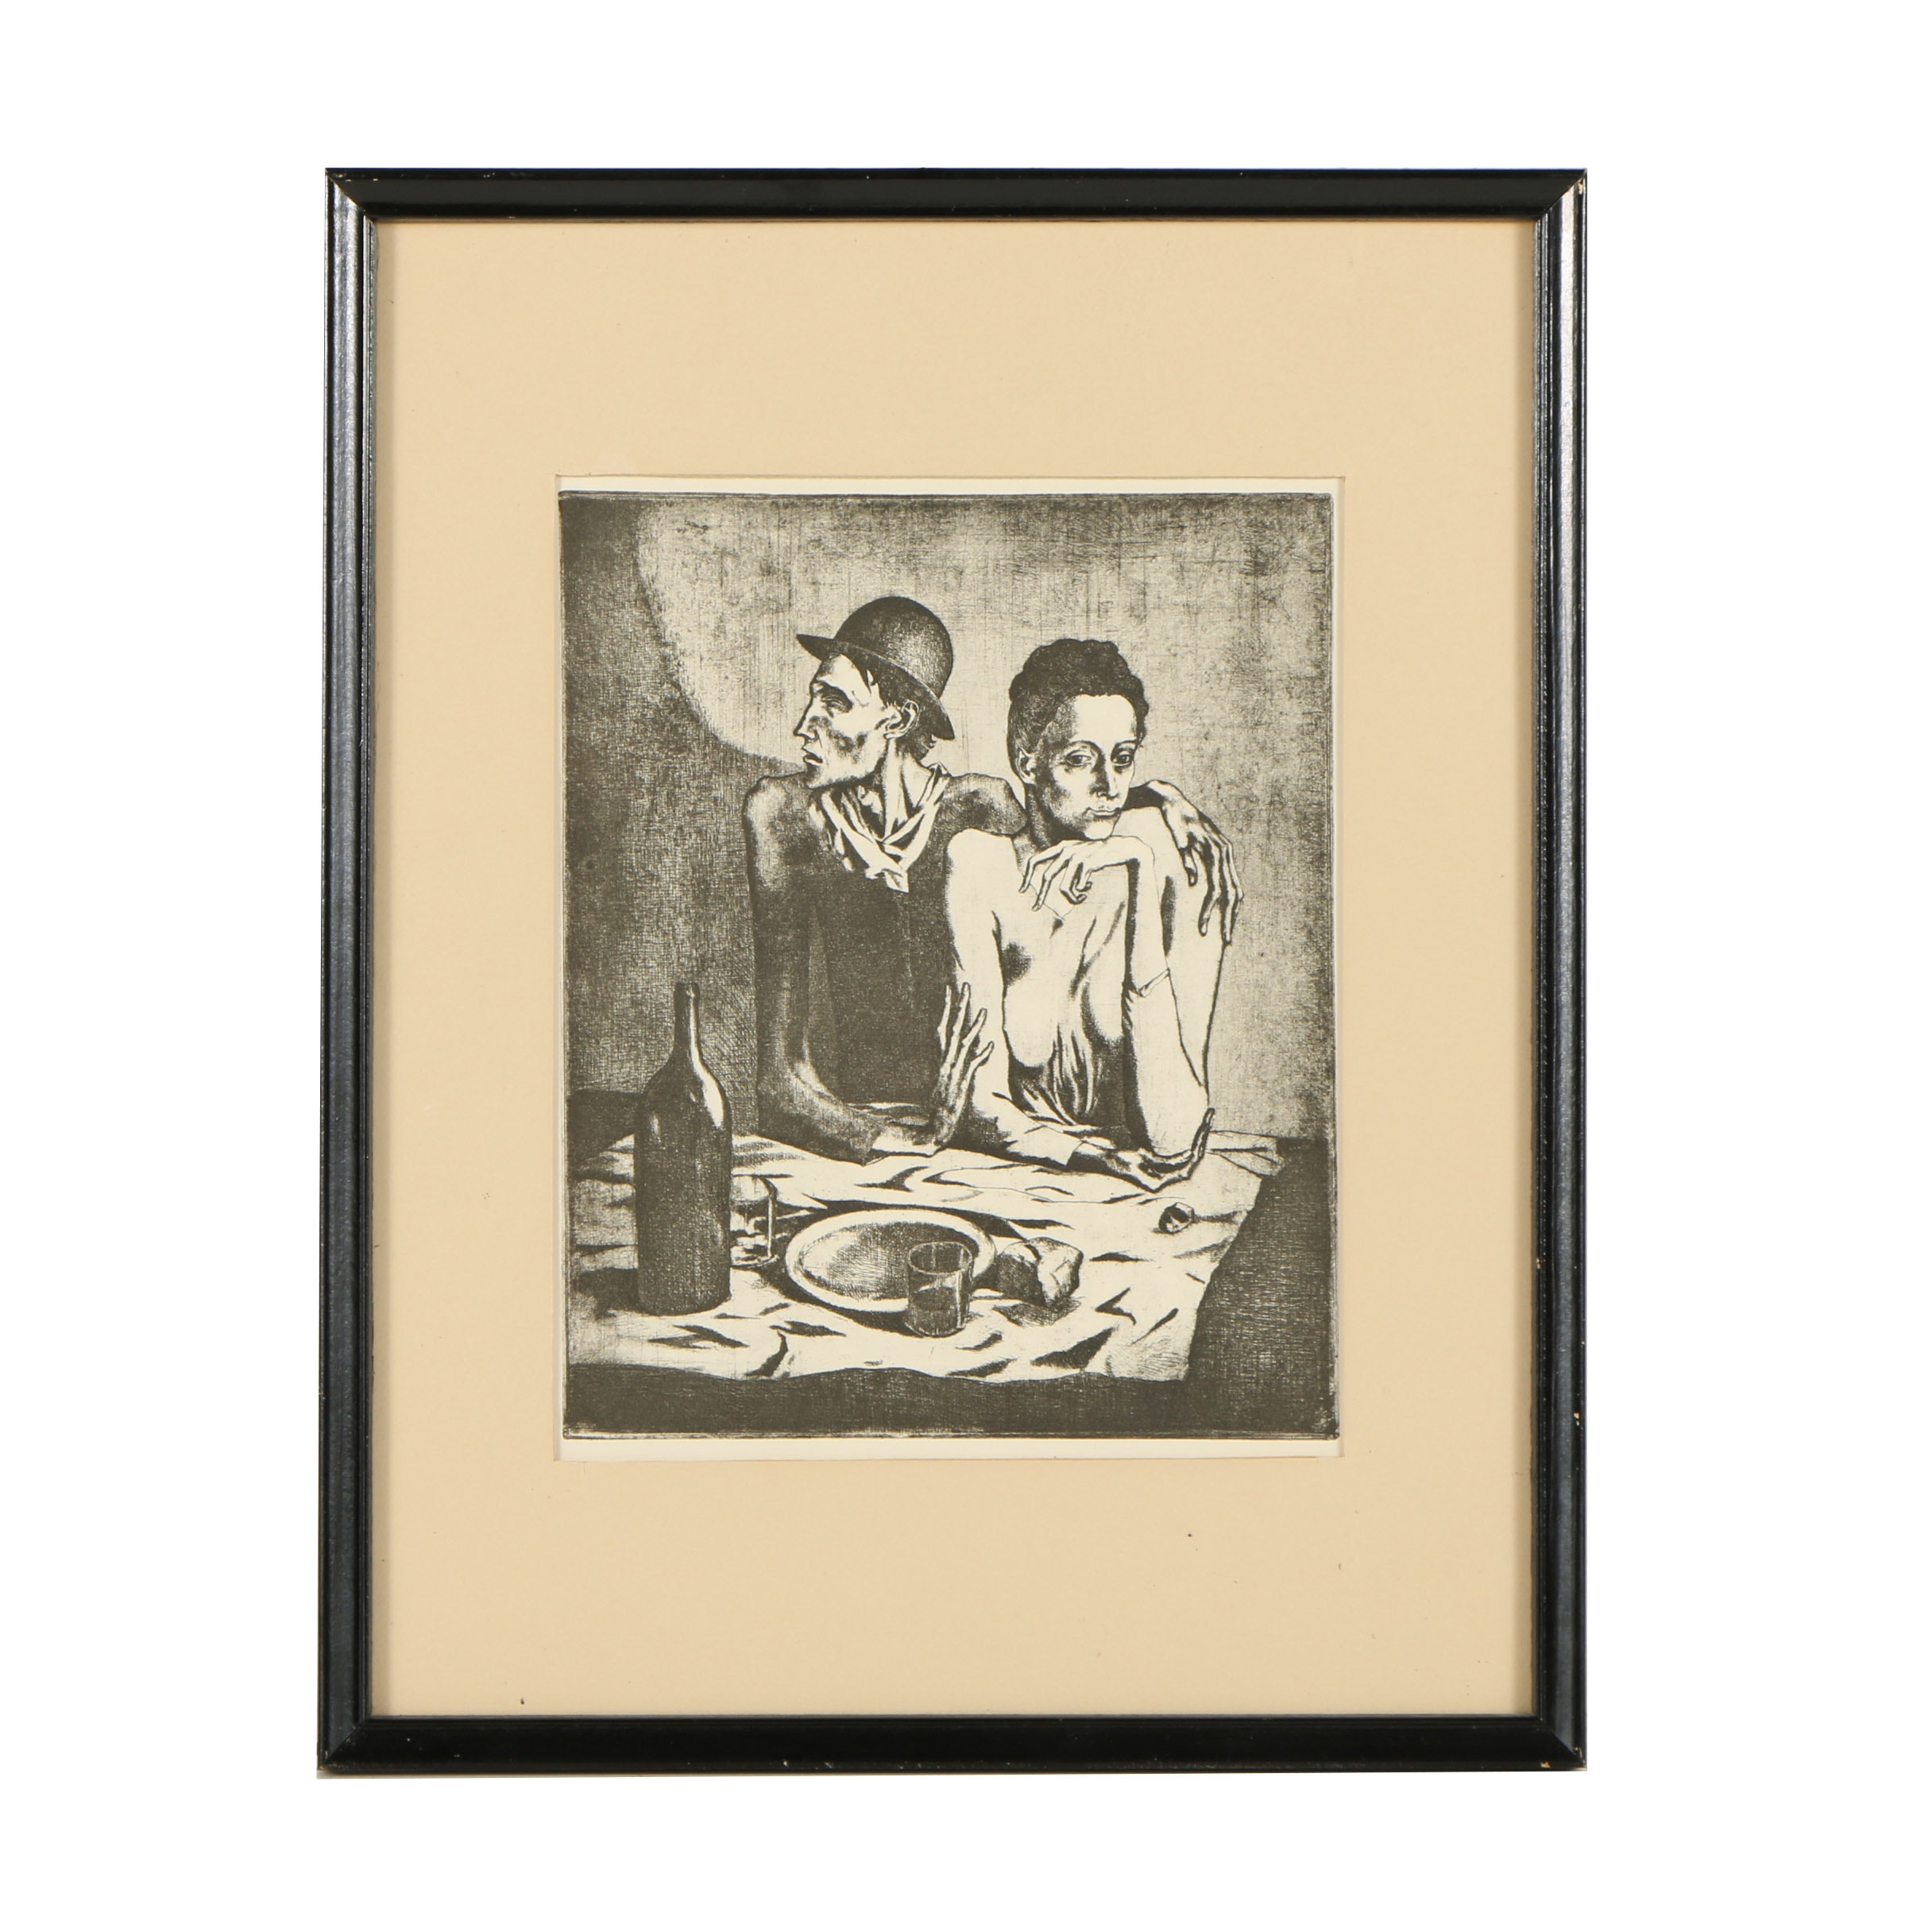 """Metzograph After Pablo Picasso """"Le repas frugal (The Frugal Repast)"""""""